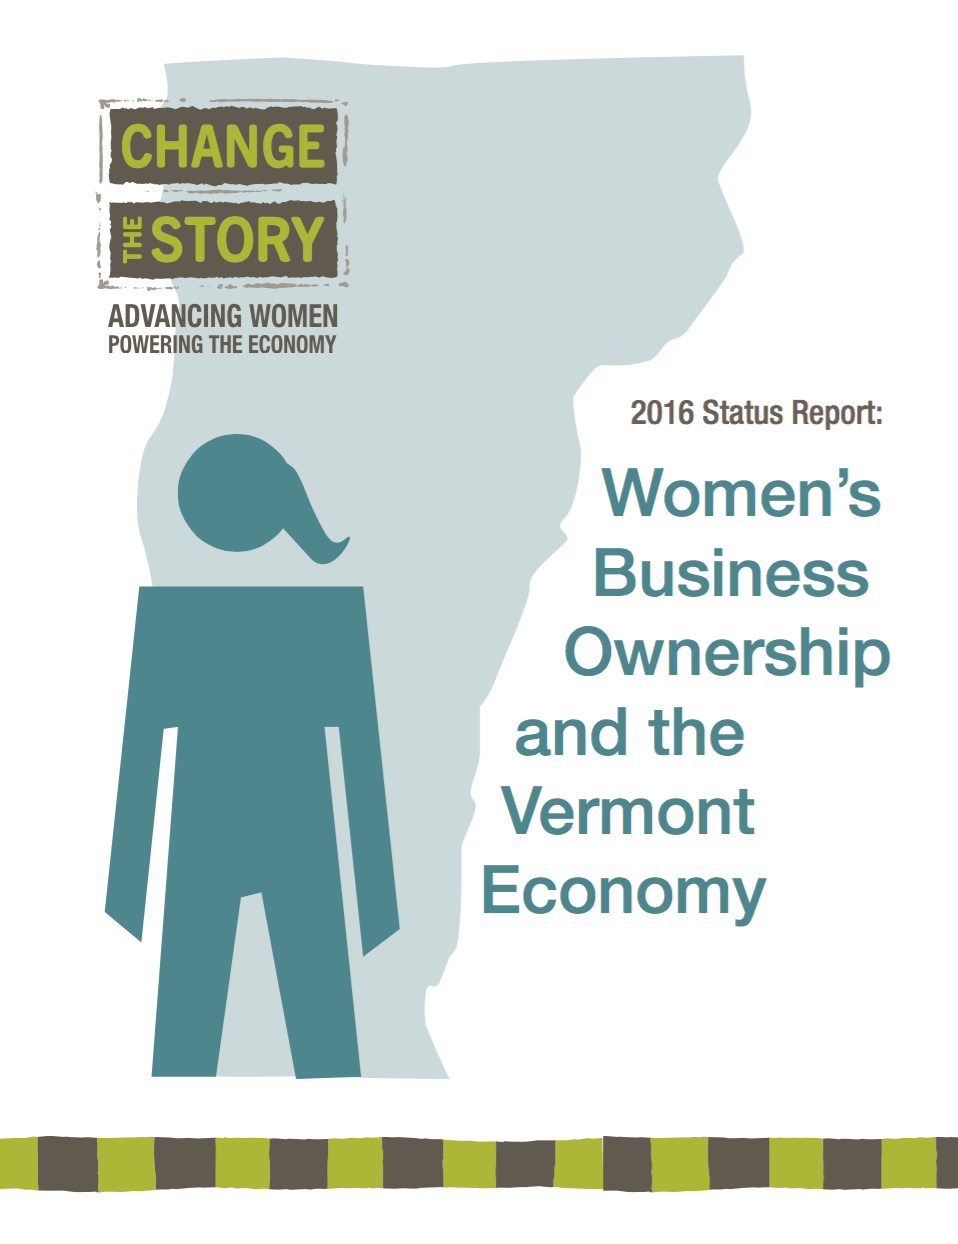 2016 Status Report: Women's Business Ownership and the Vermont Economy